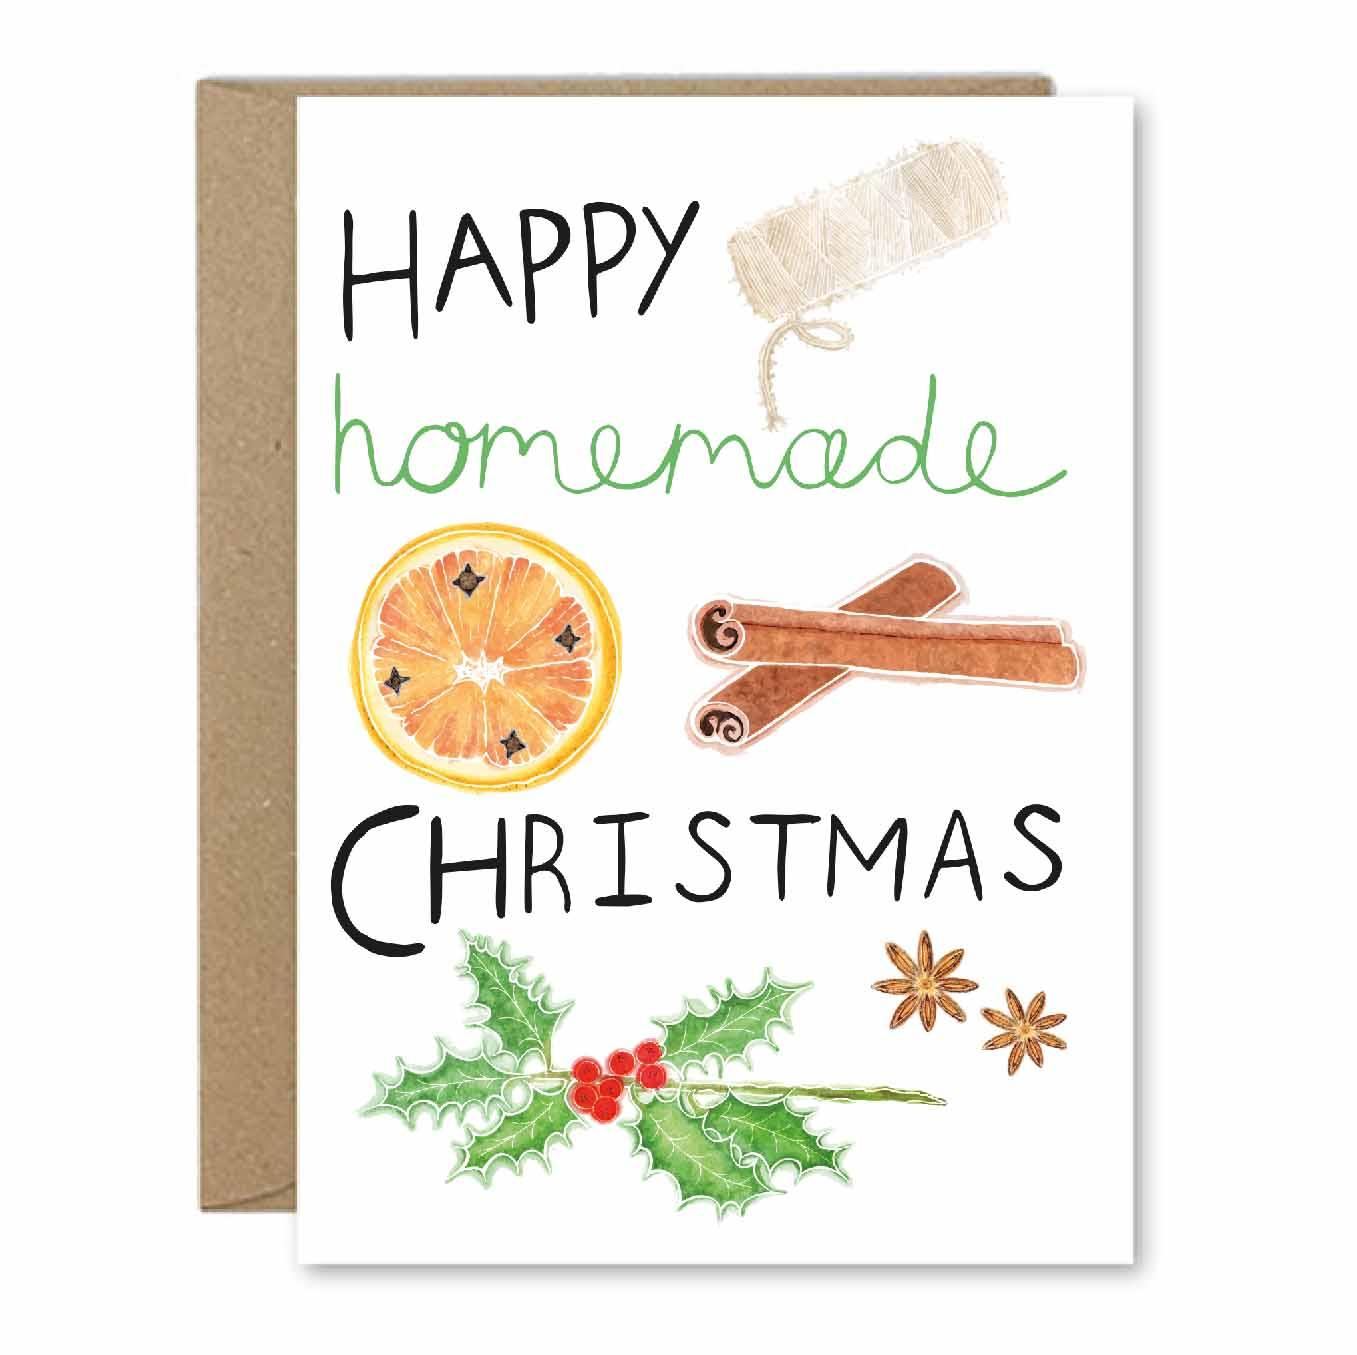 Happy Homemade Christmas - Recycled Greeting Card